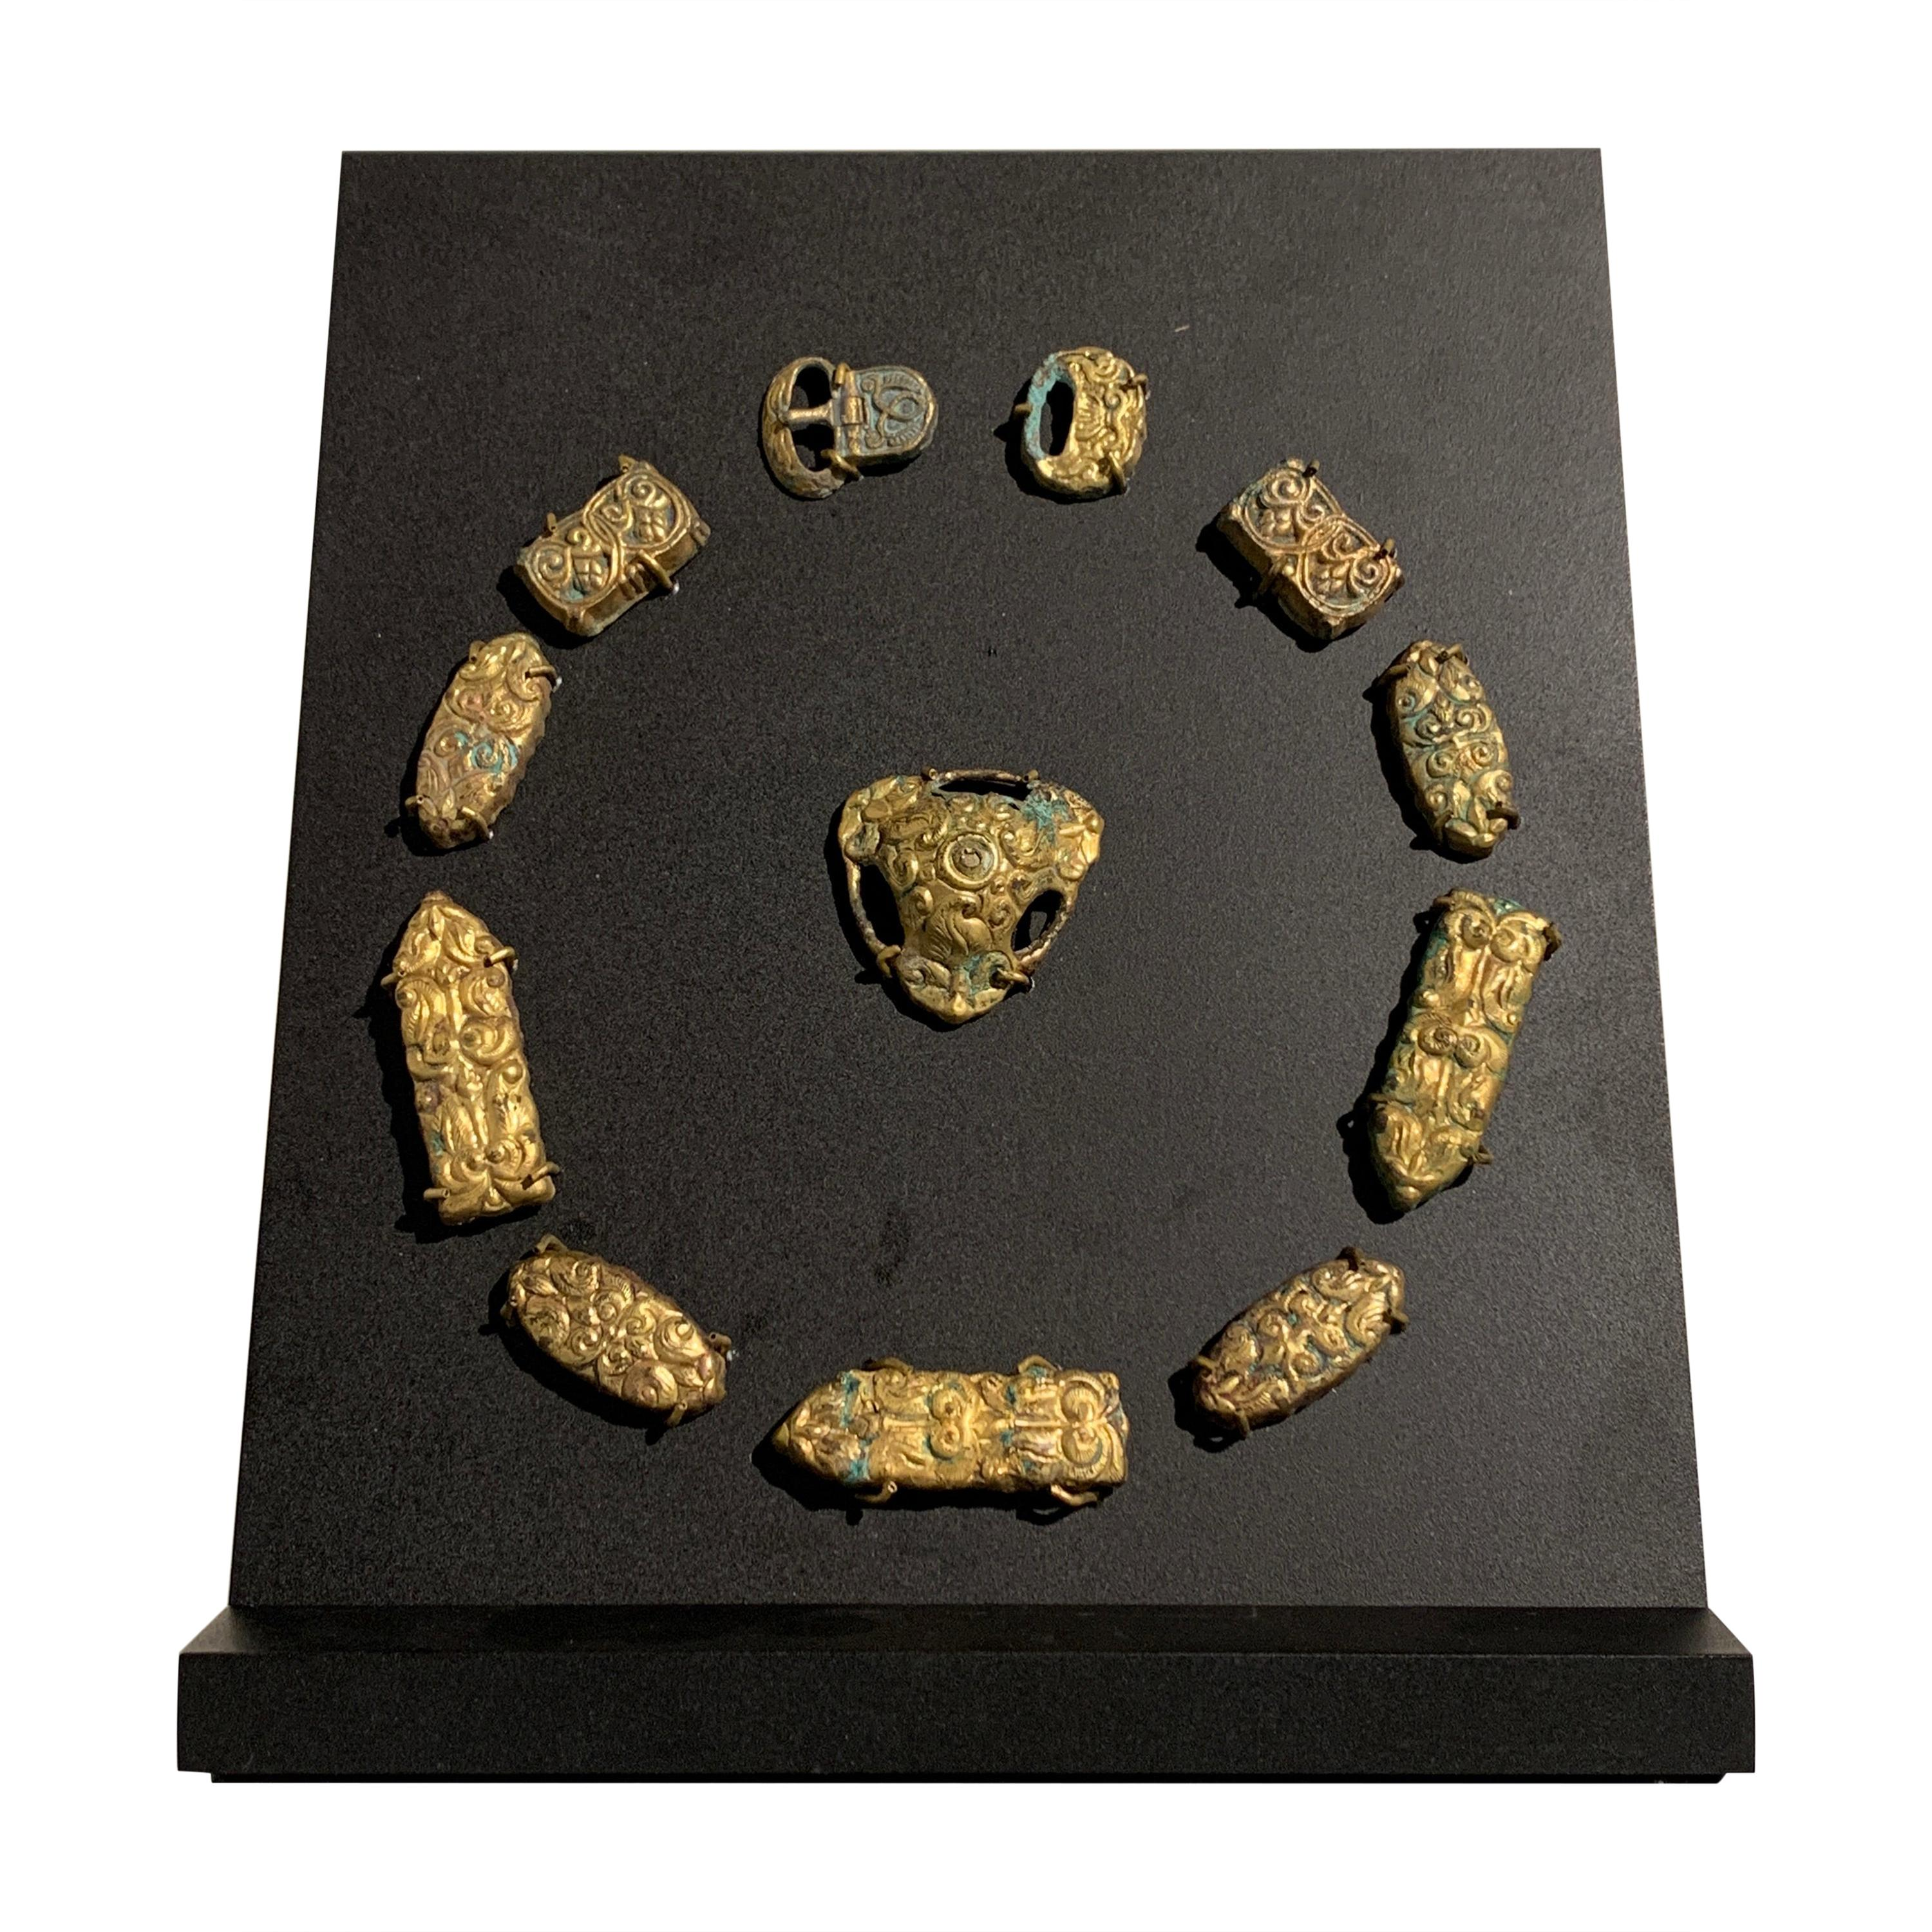 Khitan Liao Dynasty Gold Clad Horse Trappings, 10th-11th Century, China